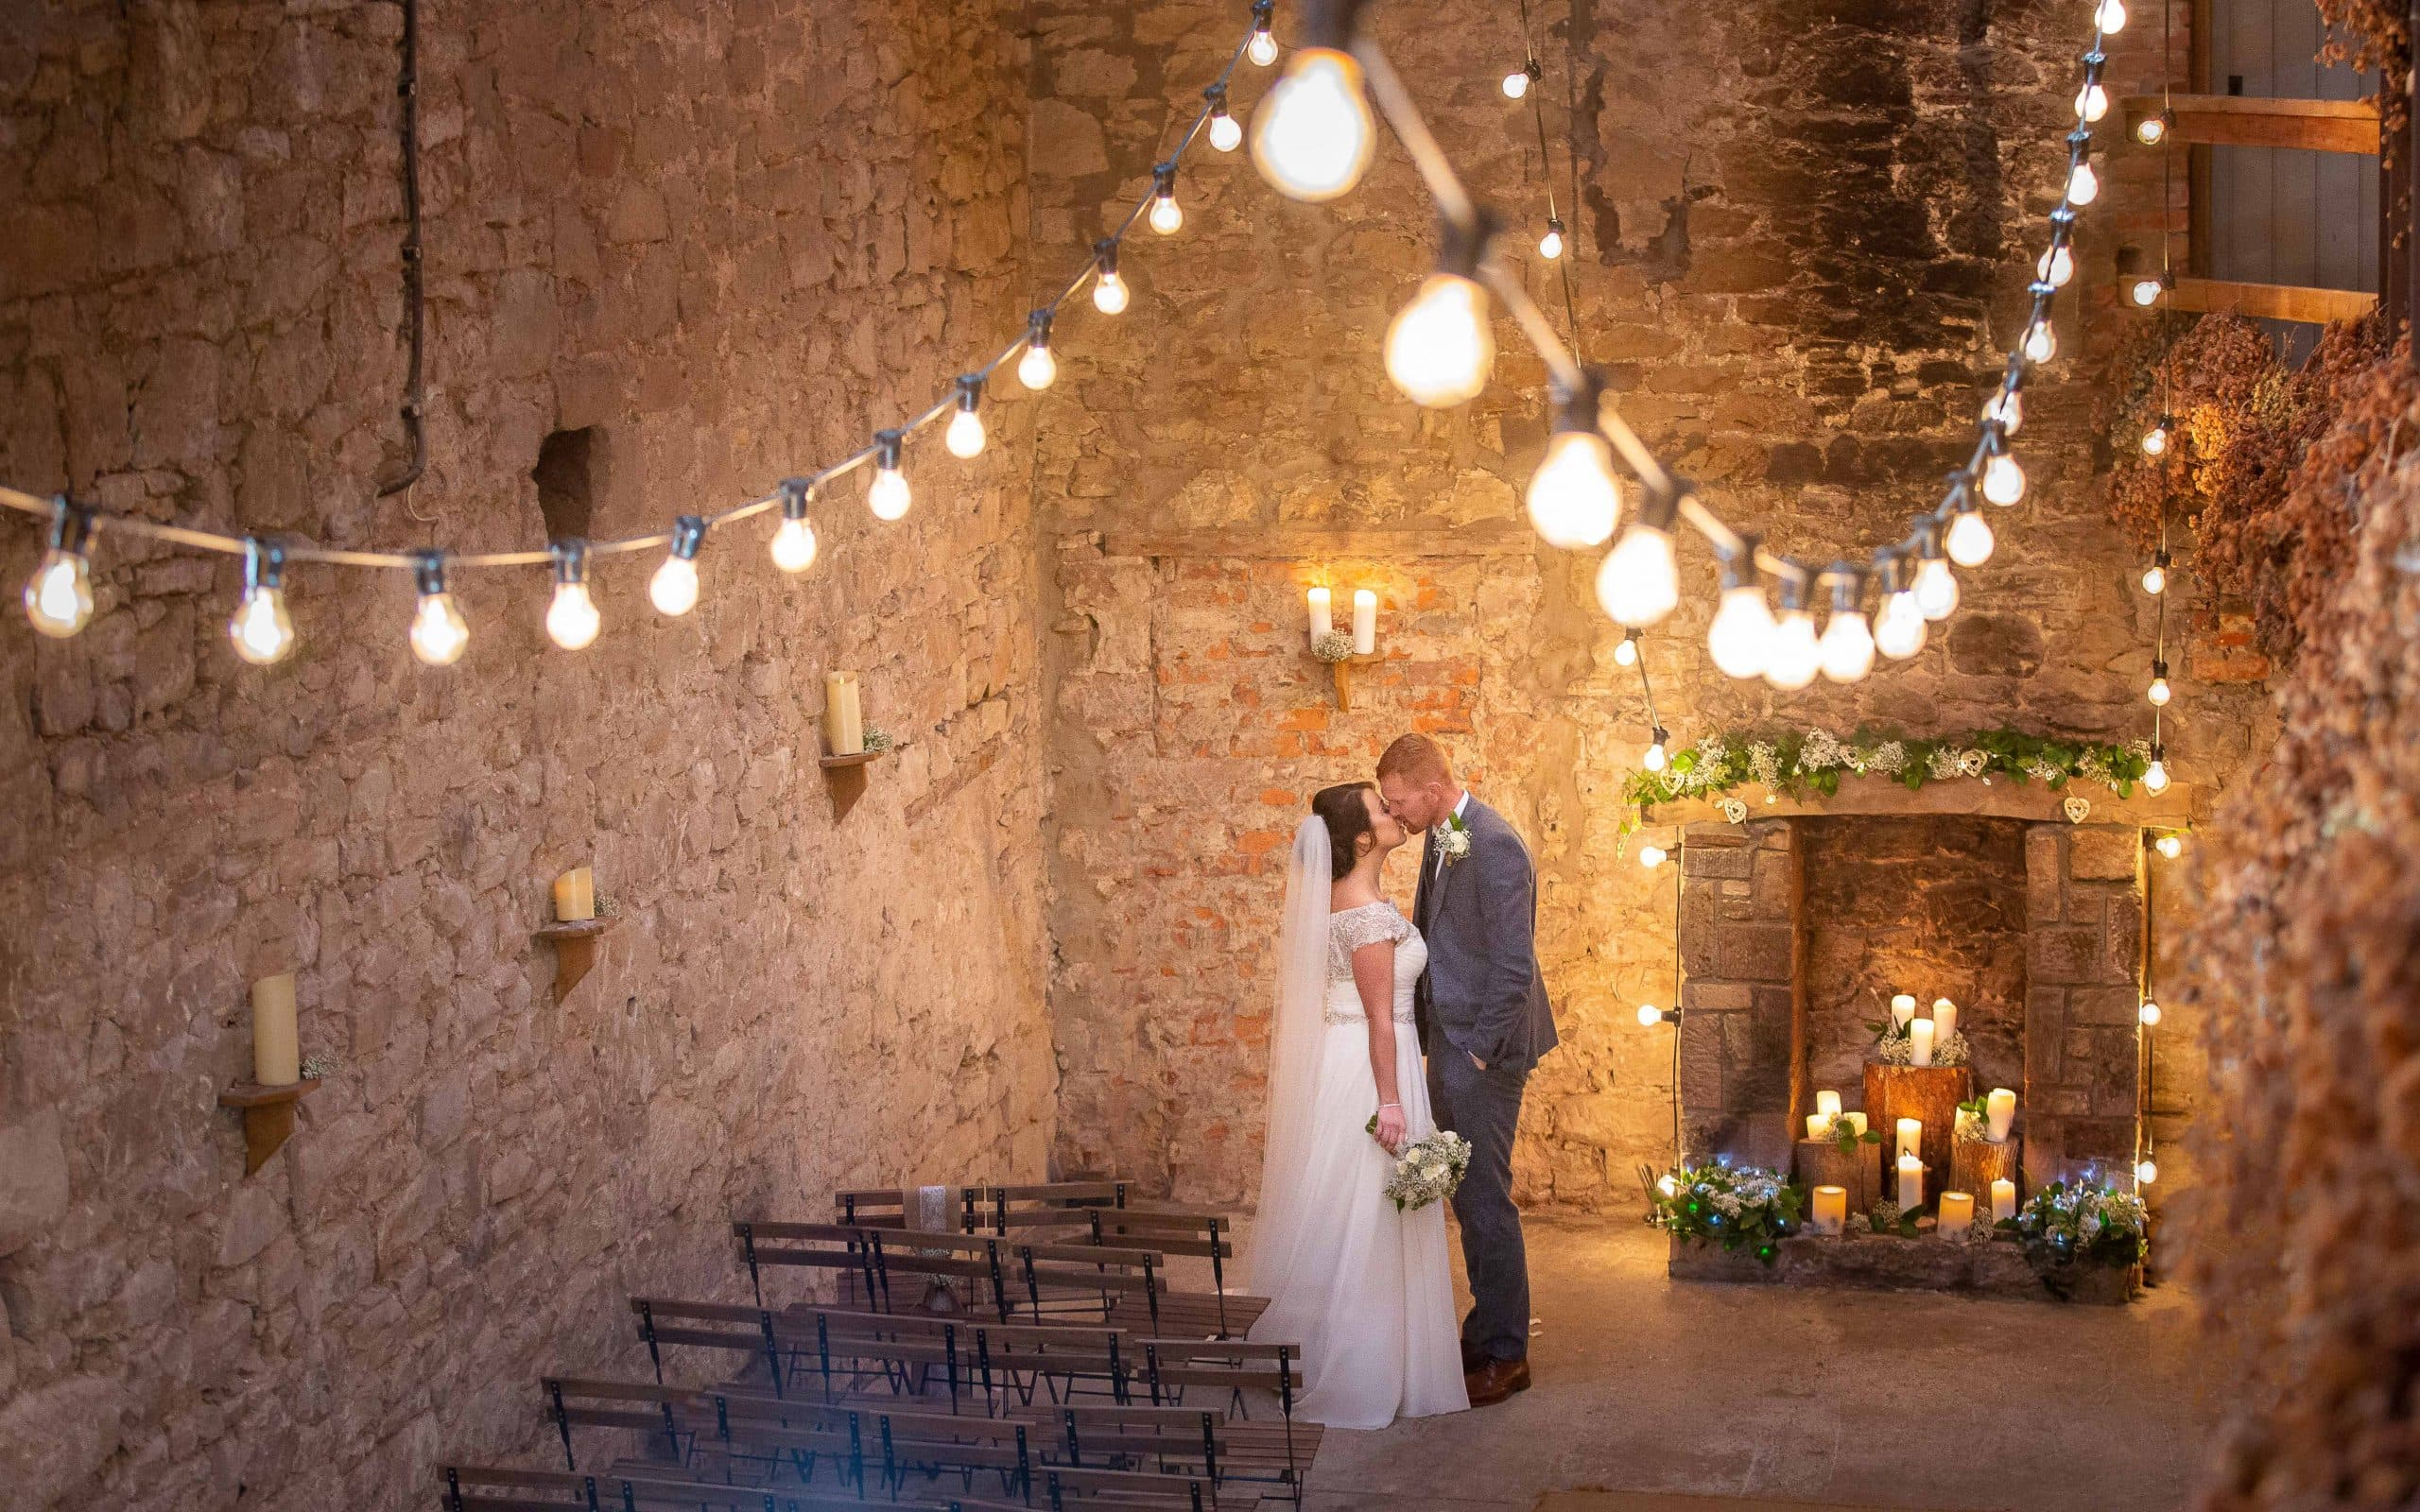 Doxford Barns wedding images by Teardrop Photography